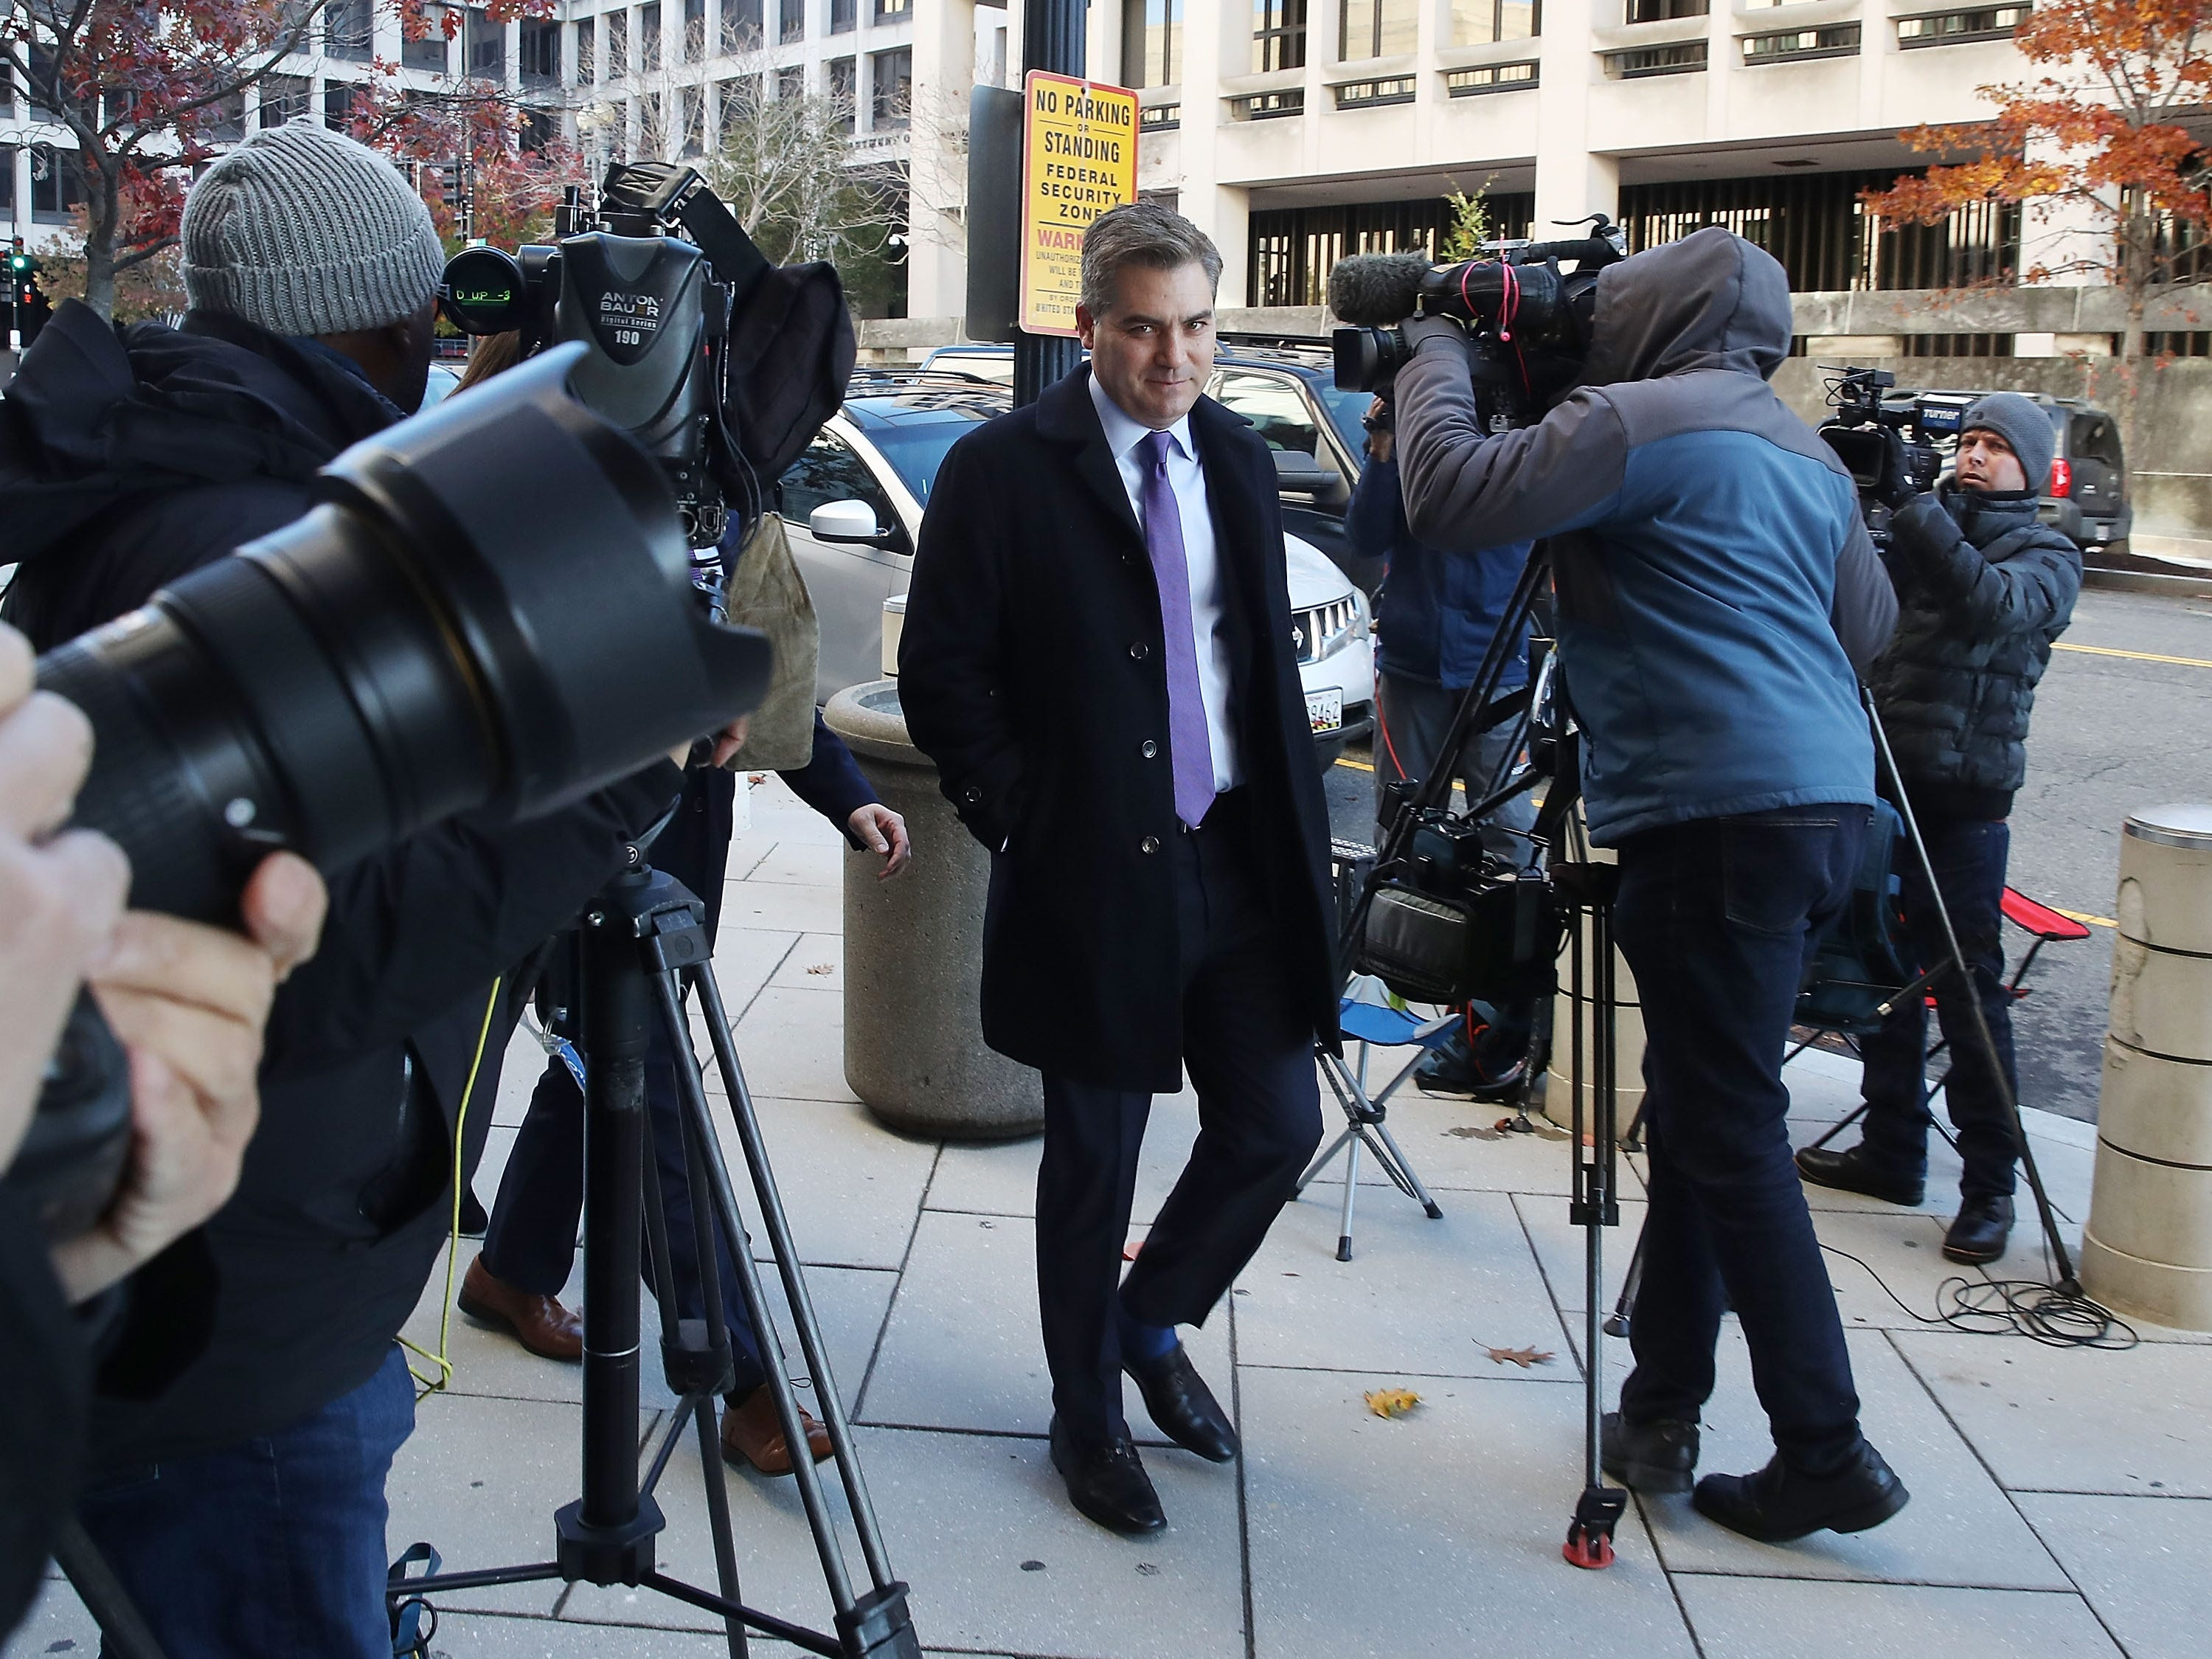 A federal judge ordered the White House on Friday to restore CNN reporter Jim Acosta's press badge, which had been revoked Nov. 7 after a contentious exchange at a news conference with President Donald Here,   Acosta arrives for the hearing at the U.S. District Court on Nov. 16, 2018 in Washington, DC.